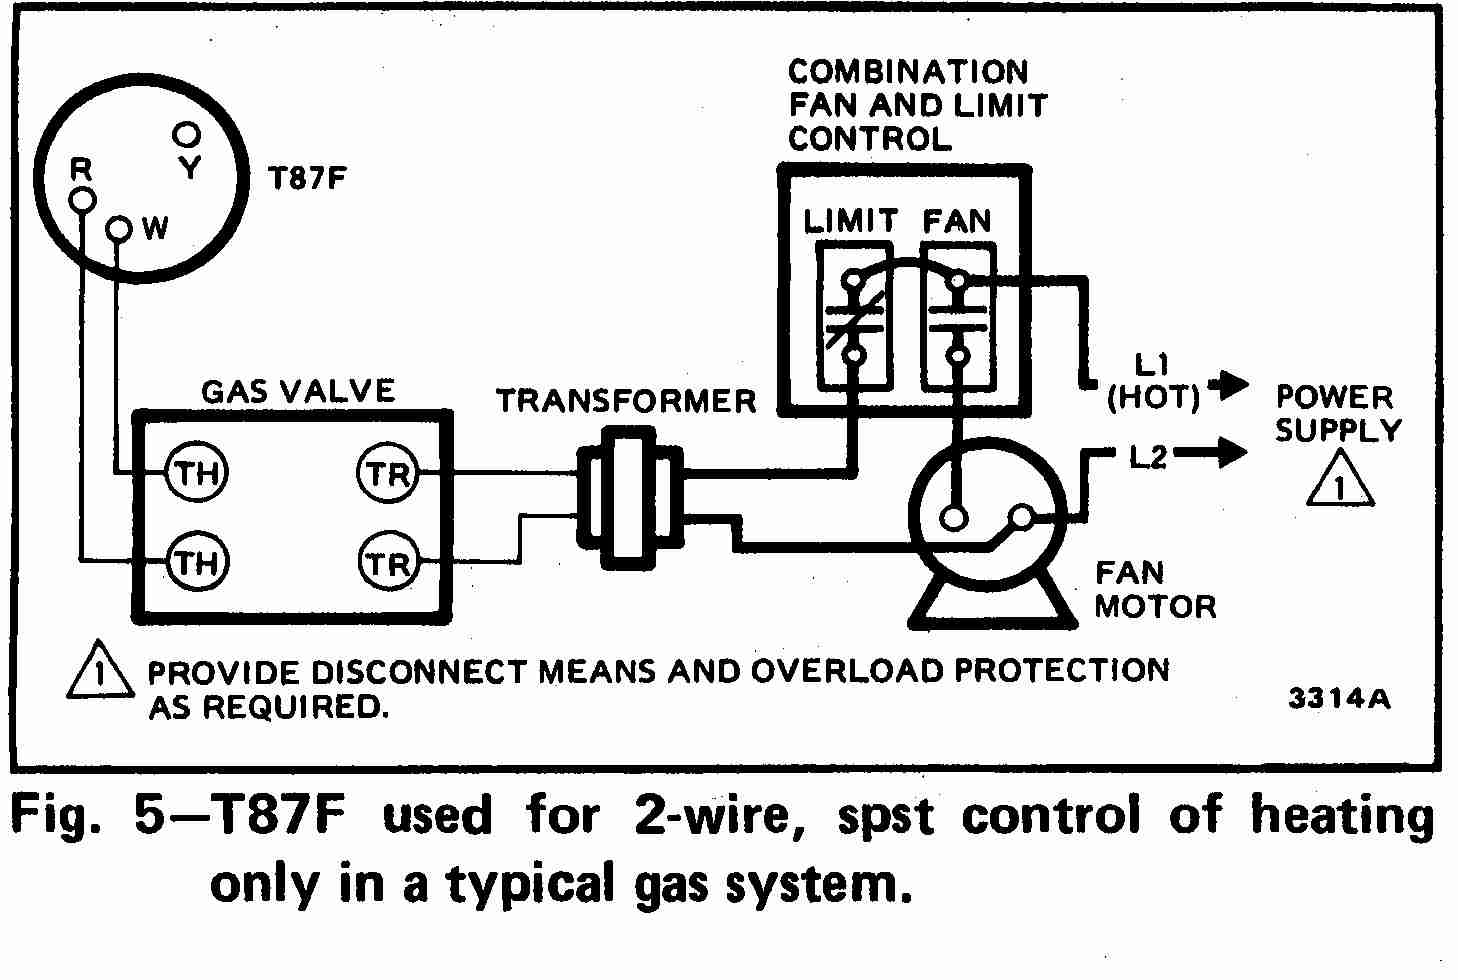 guide to wiring connections for room thermostats Furnace Blower Wiring Diagram